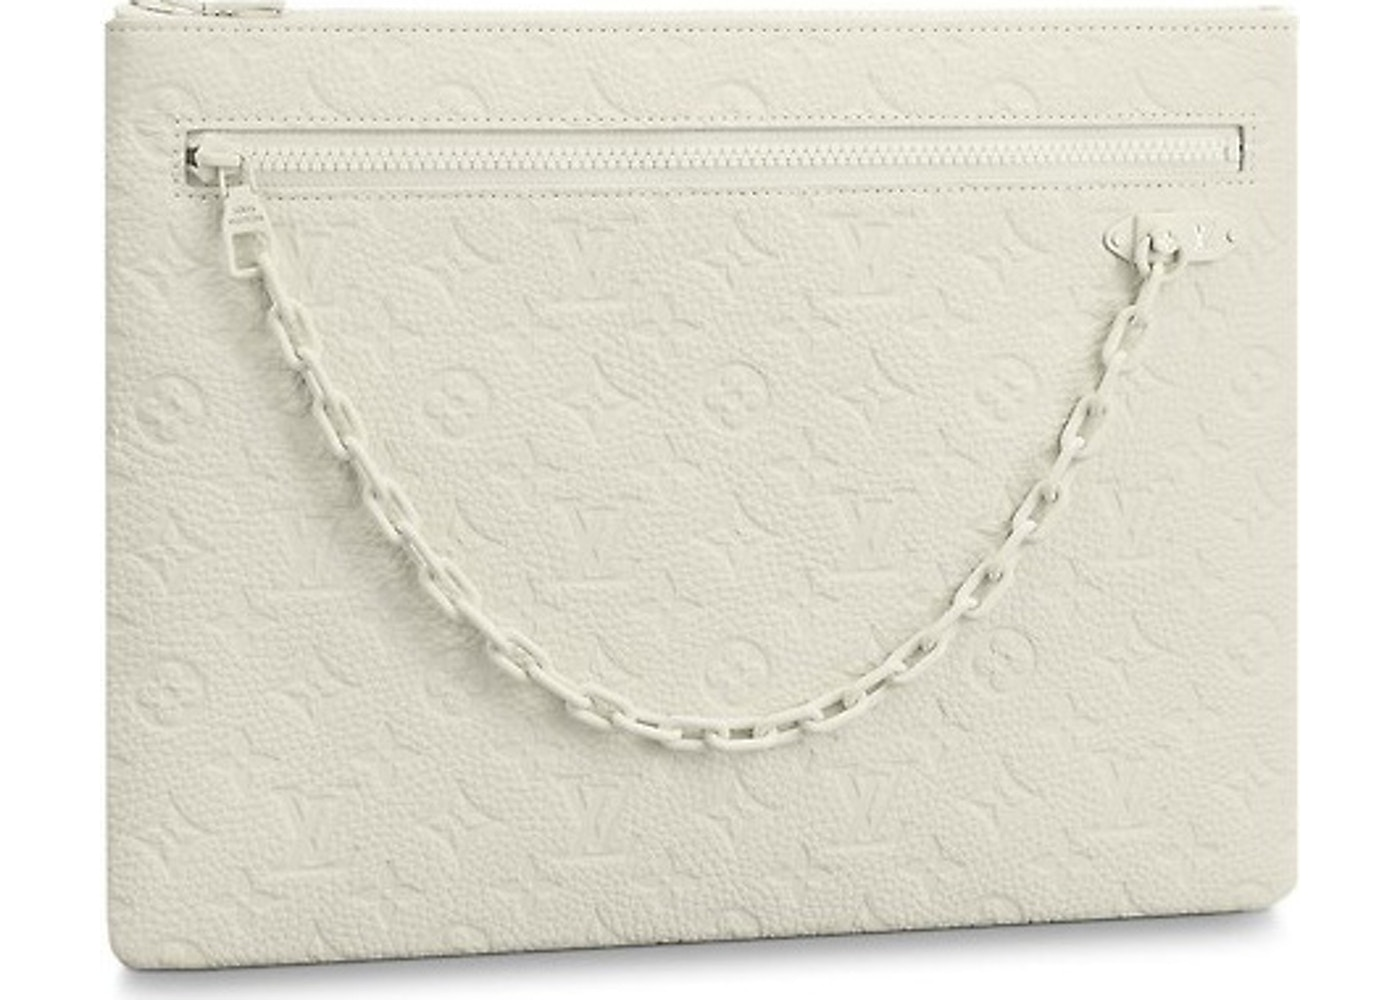 48fb74df0670 Louis Vuitton A4 Pouch Monogram White. Monogram White